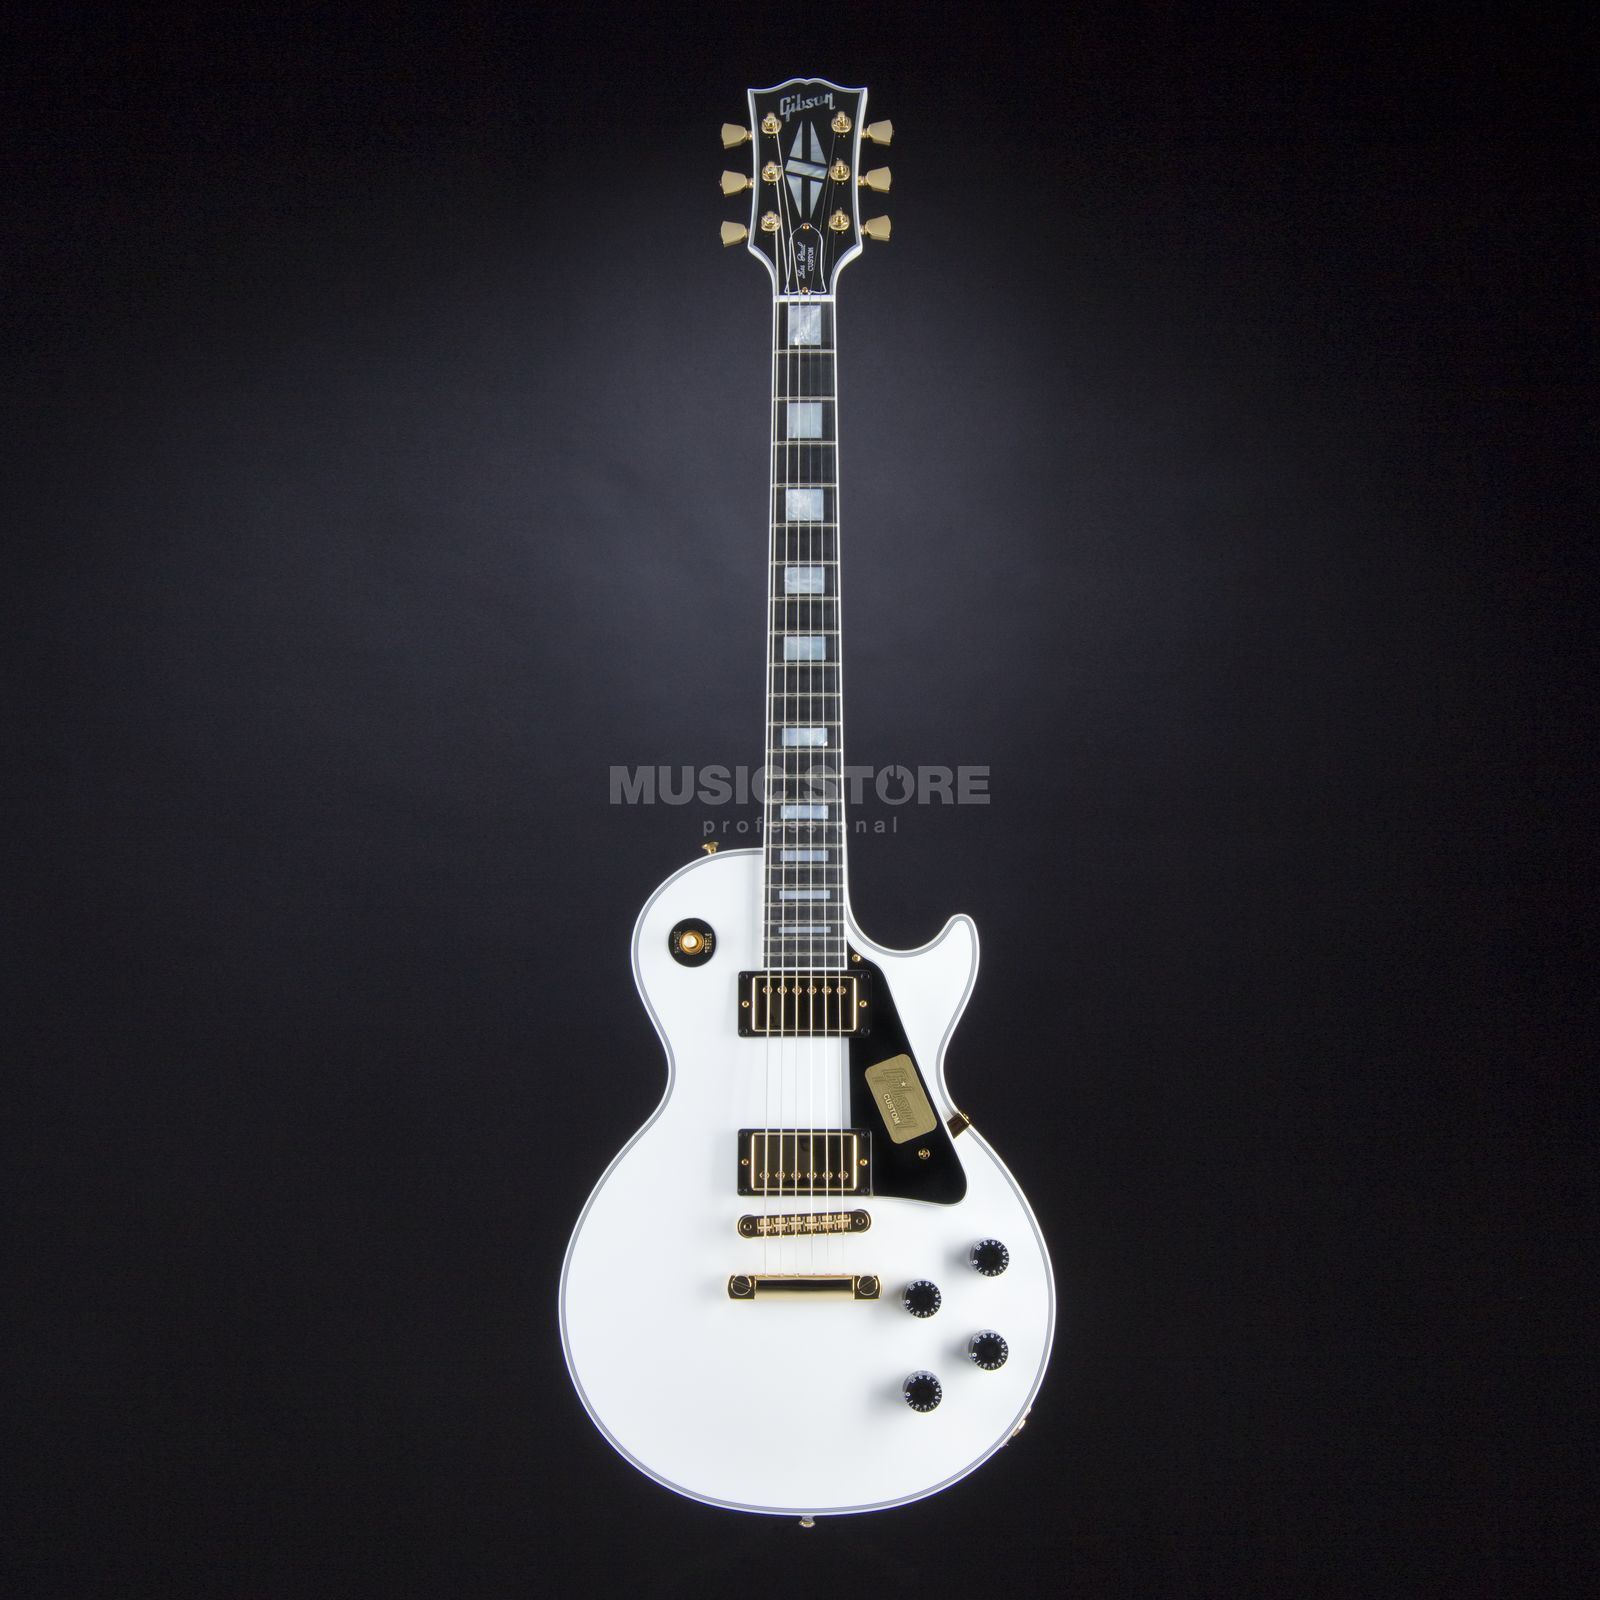 Gibson Les Paul Custom Electric Guita r, Alpine White   Produktbillede